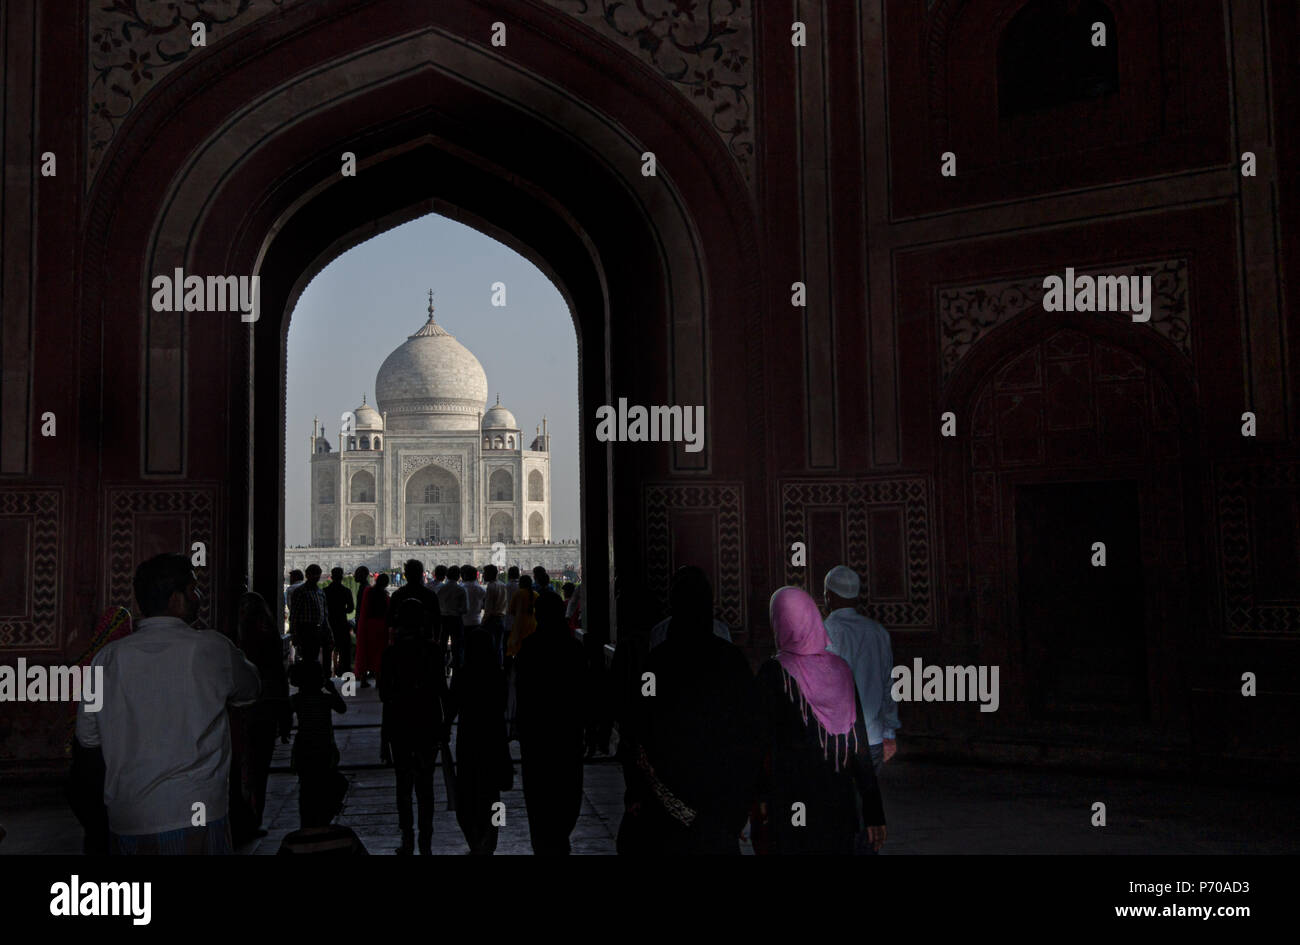 Visiting Taj Mahal, Agra, one of the wonder's of the world - Stock Image